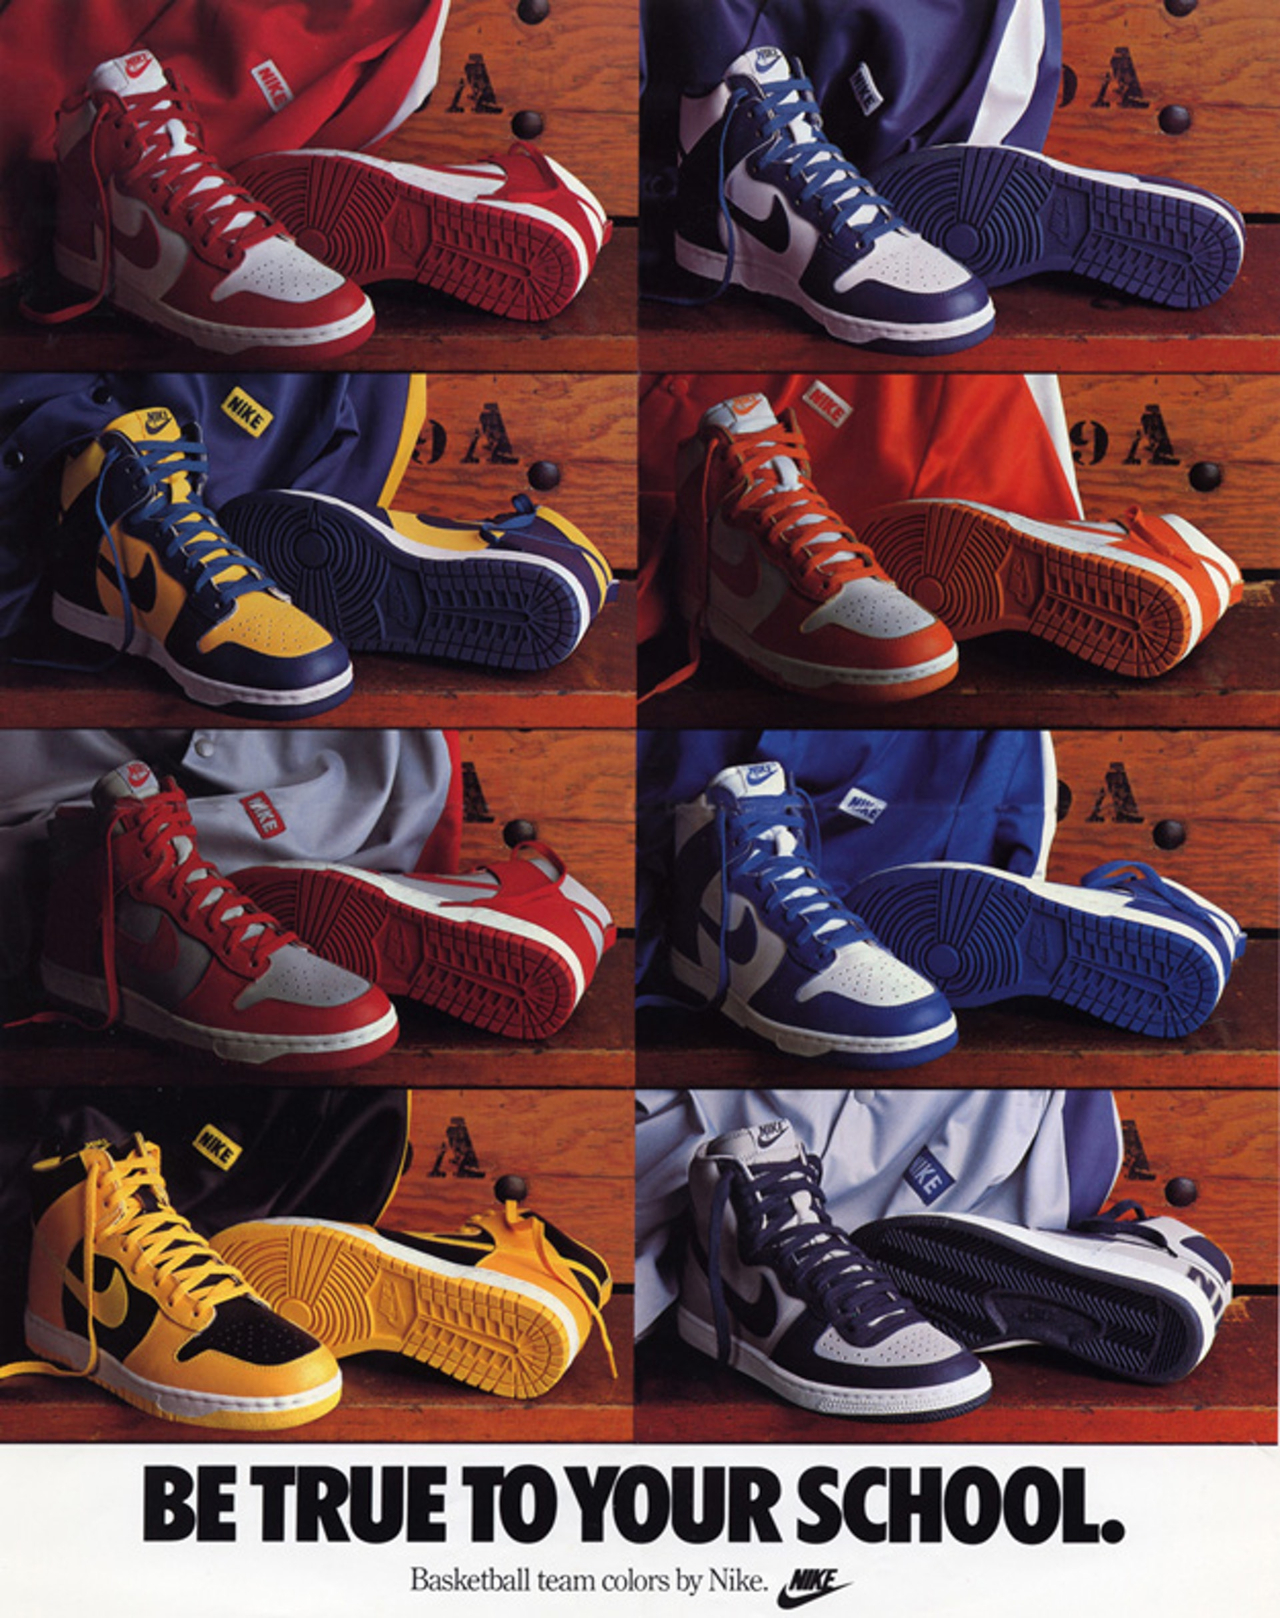 Nike Dunk - Be True To Your School